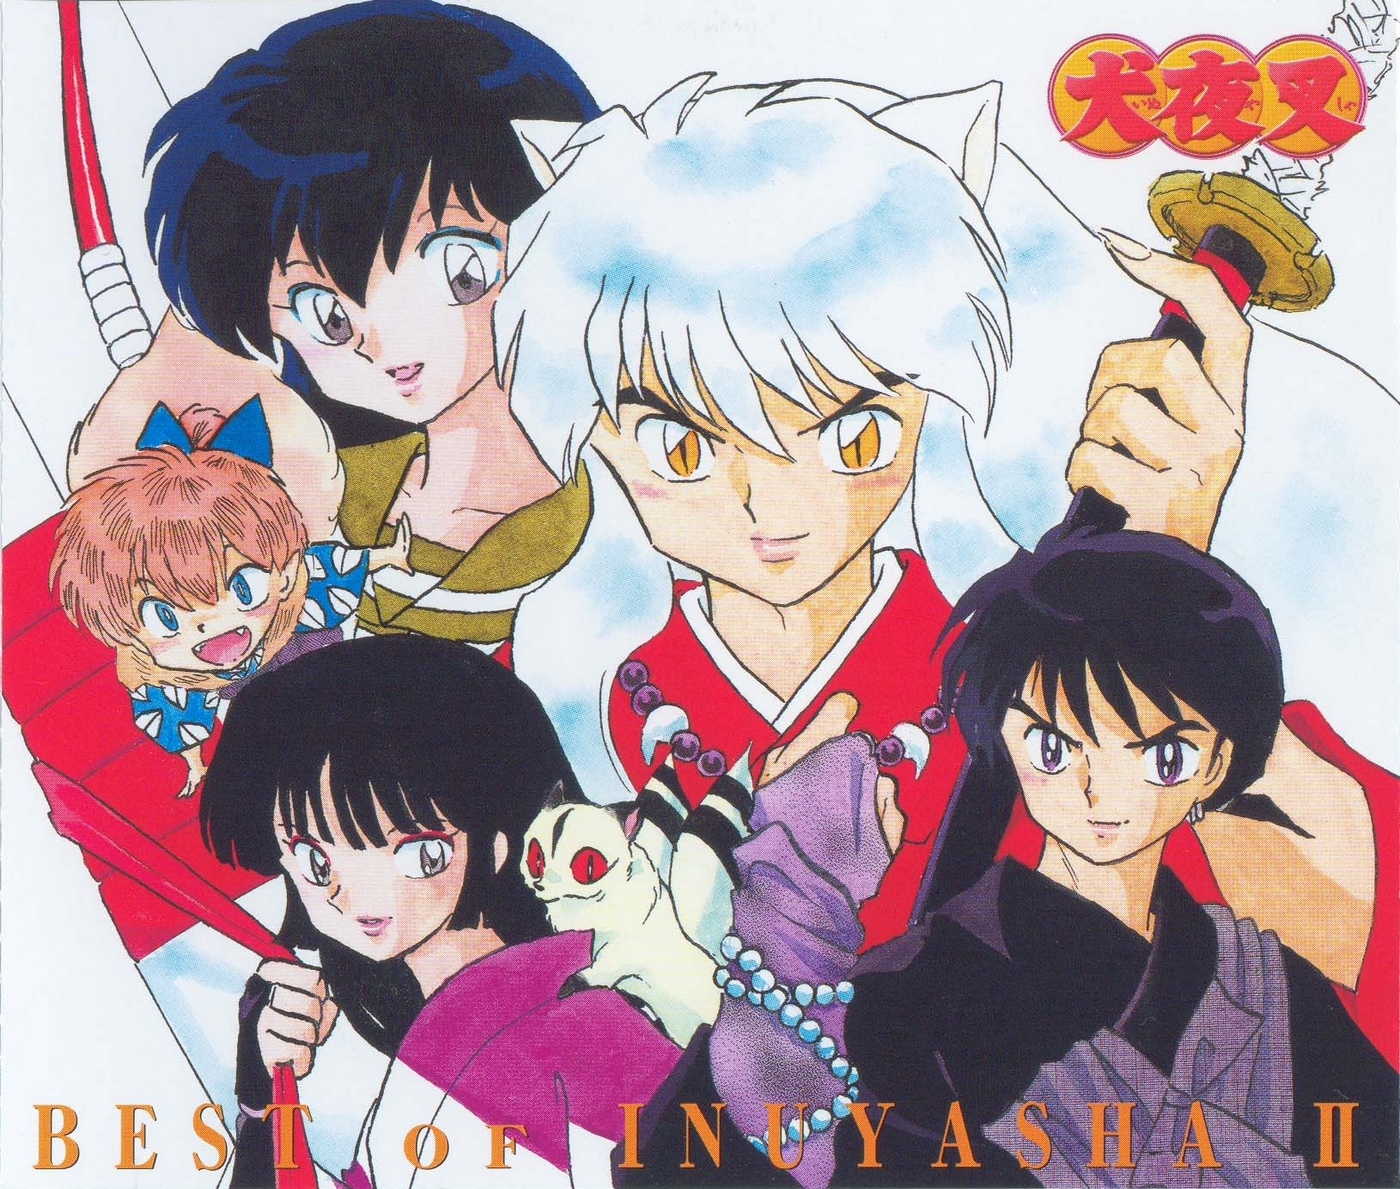 The Best of Inuyasha II